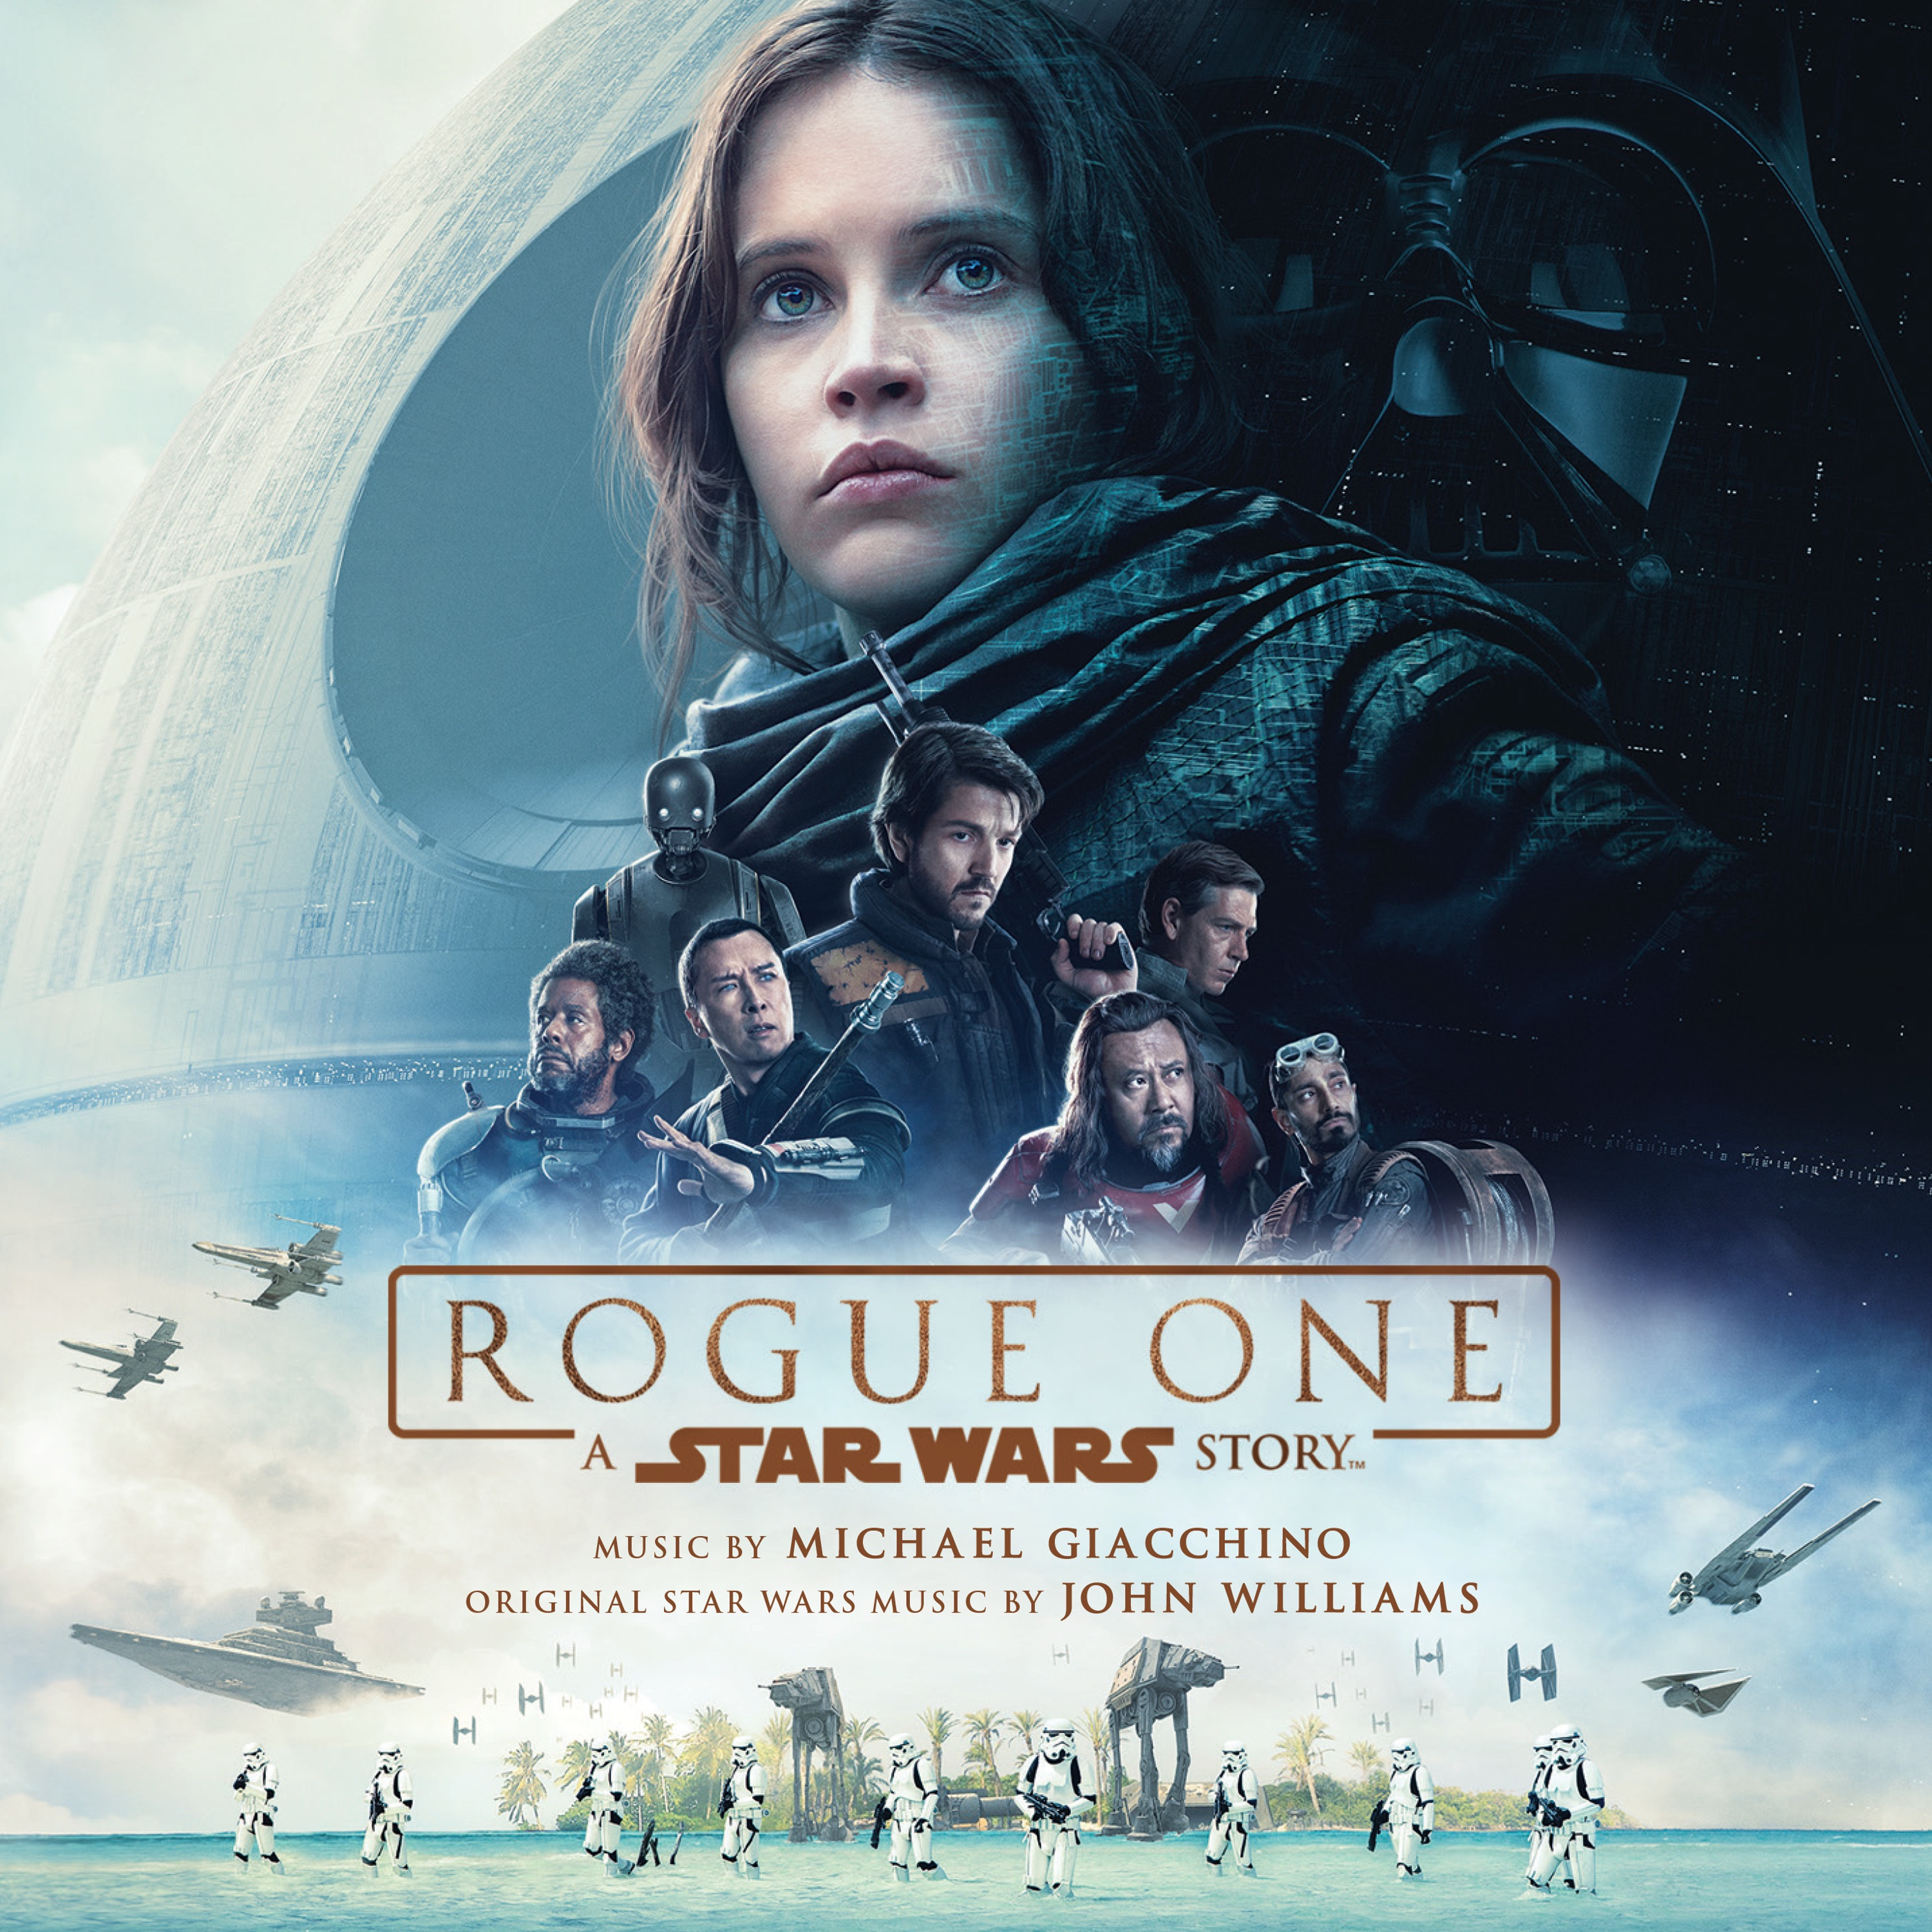 Rogue One A Star Wars Story Soundtrack.jpg